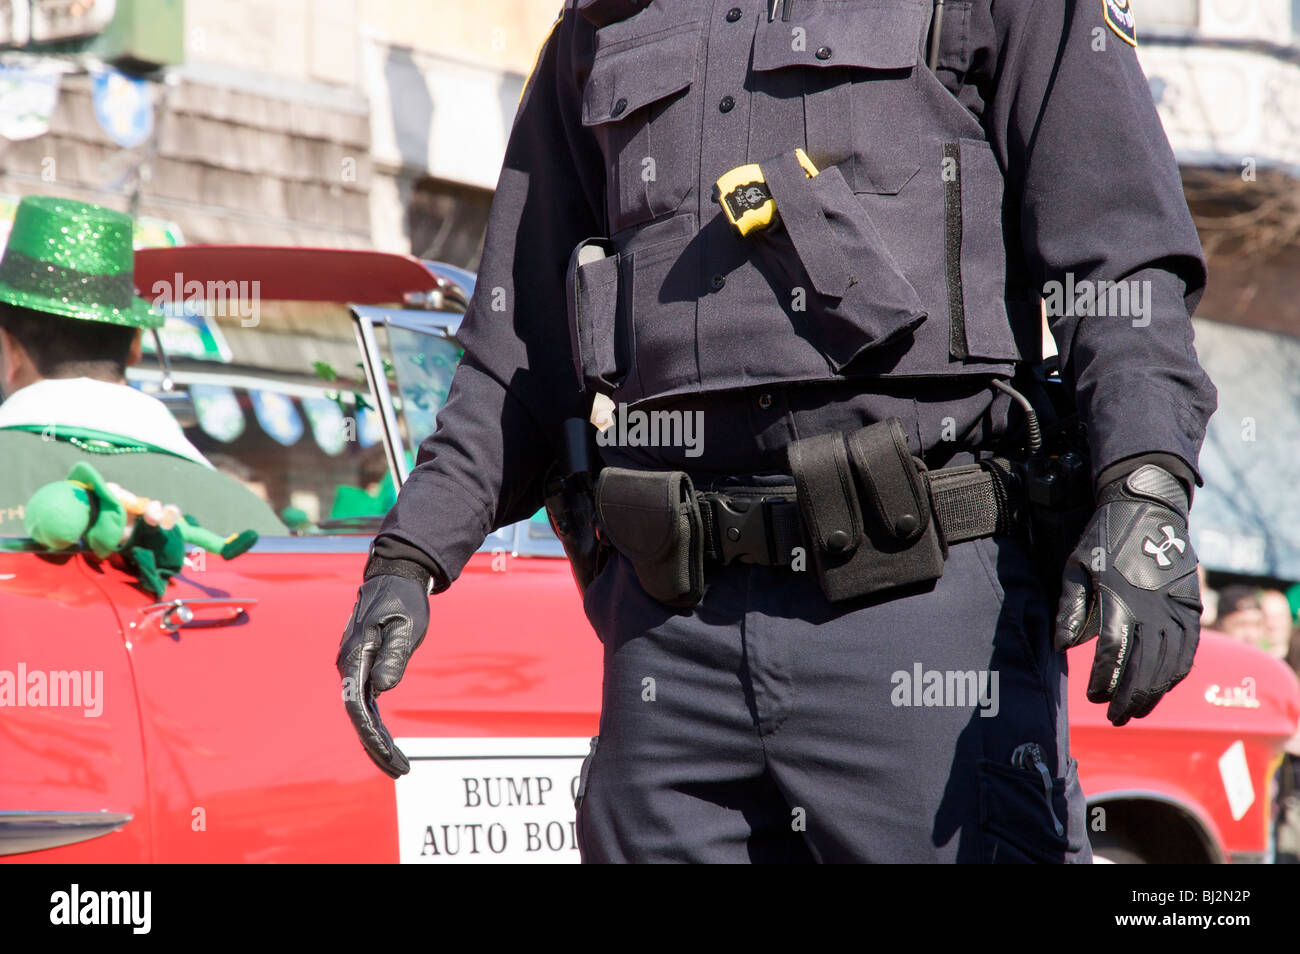 police officer torso with body armor and taser stock photo